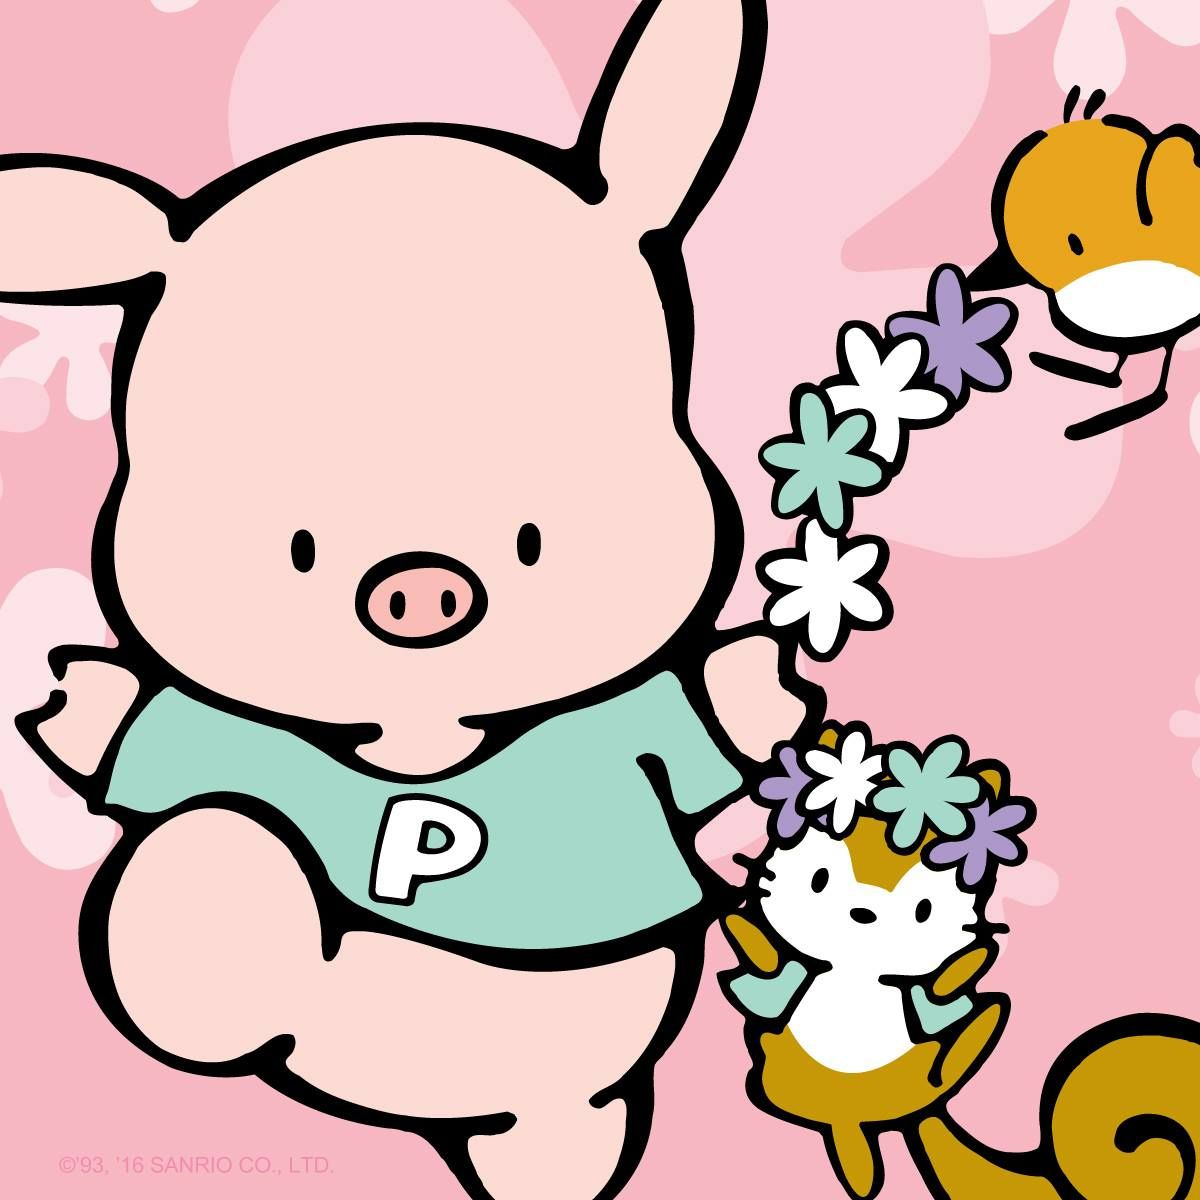 Surprise download free pippo desktop and mobile wallpapers hello kitty surprise download free pippo desktop and mobile wallpapers adorable voltagebd Gallery